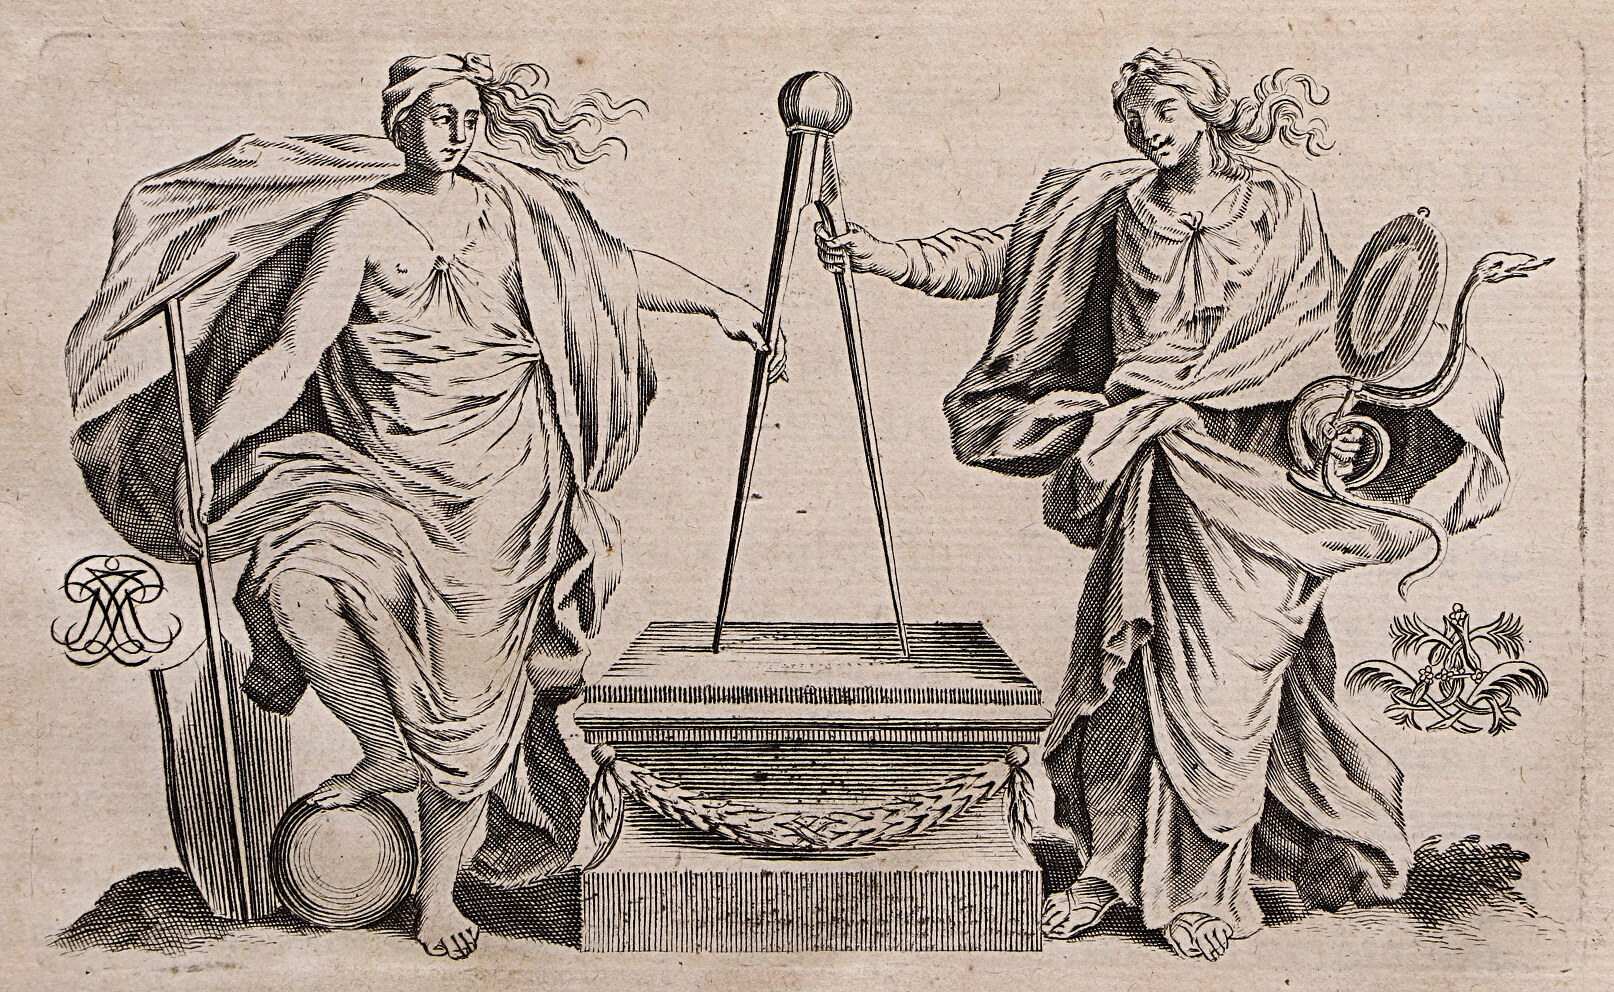 Two Virtues Holding a Compass, printed by Denise de Heuqueville, 1680